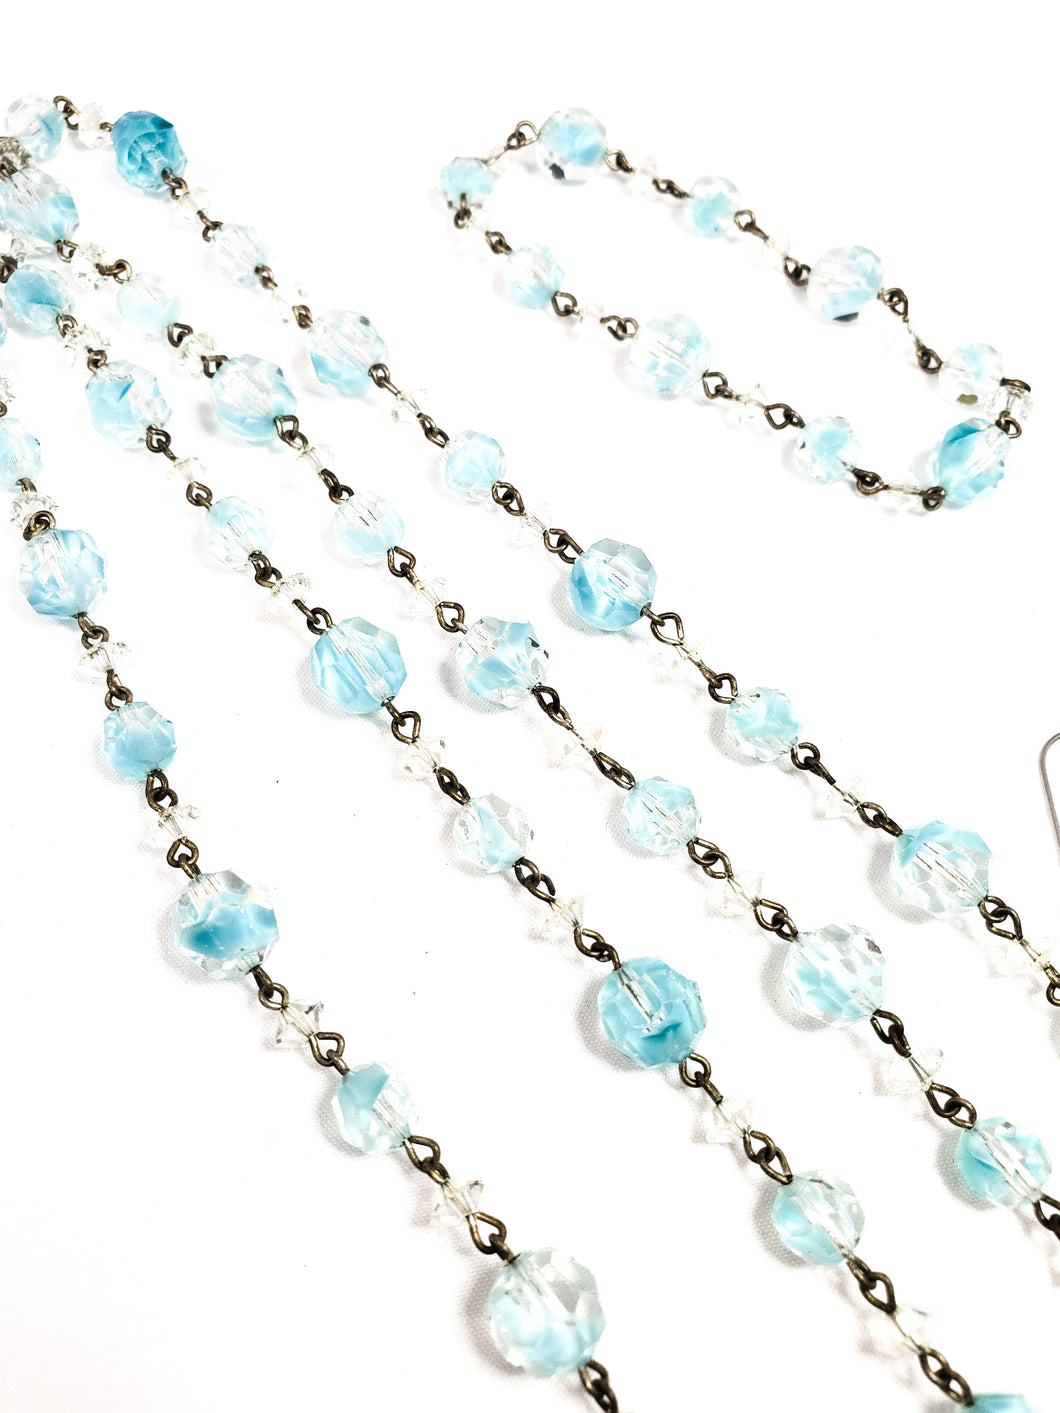 Antique blue and clear bi-colored lead glass faceted beads on brass chain demi parure set